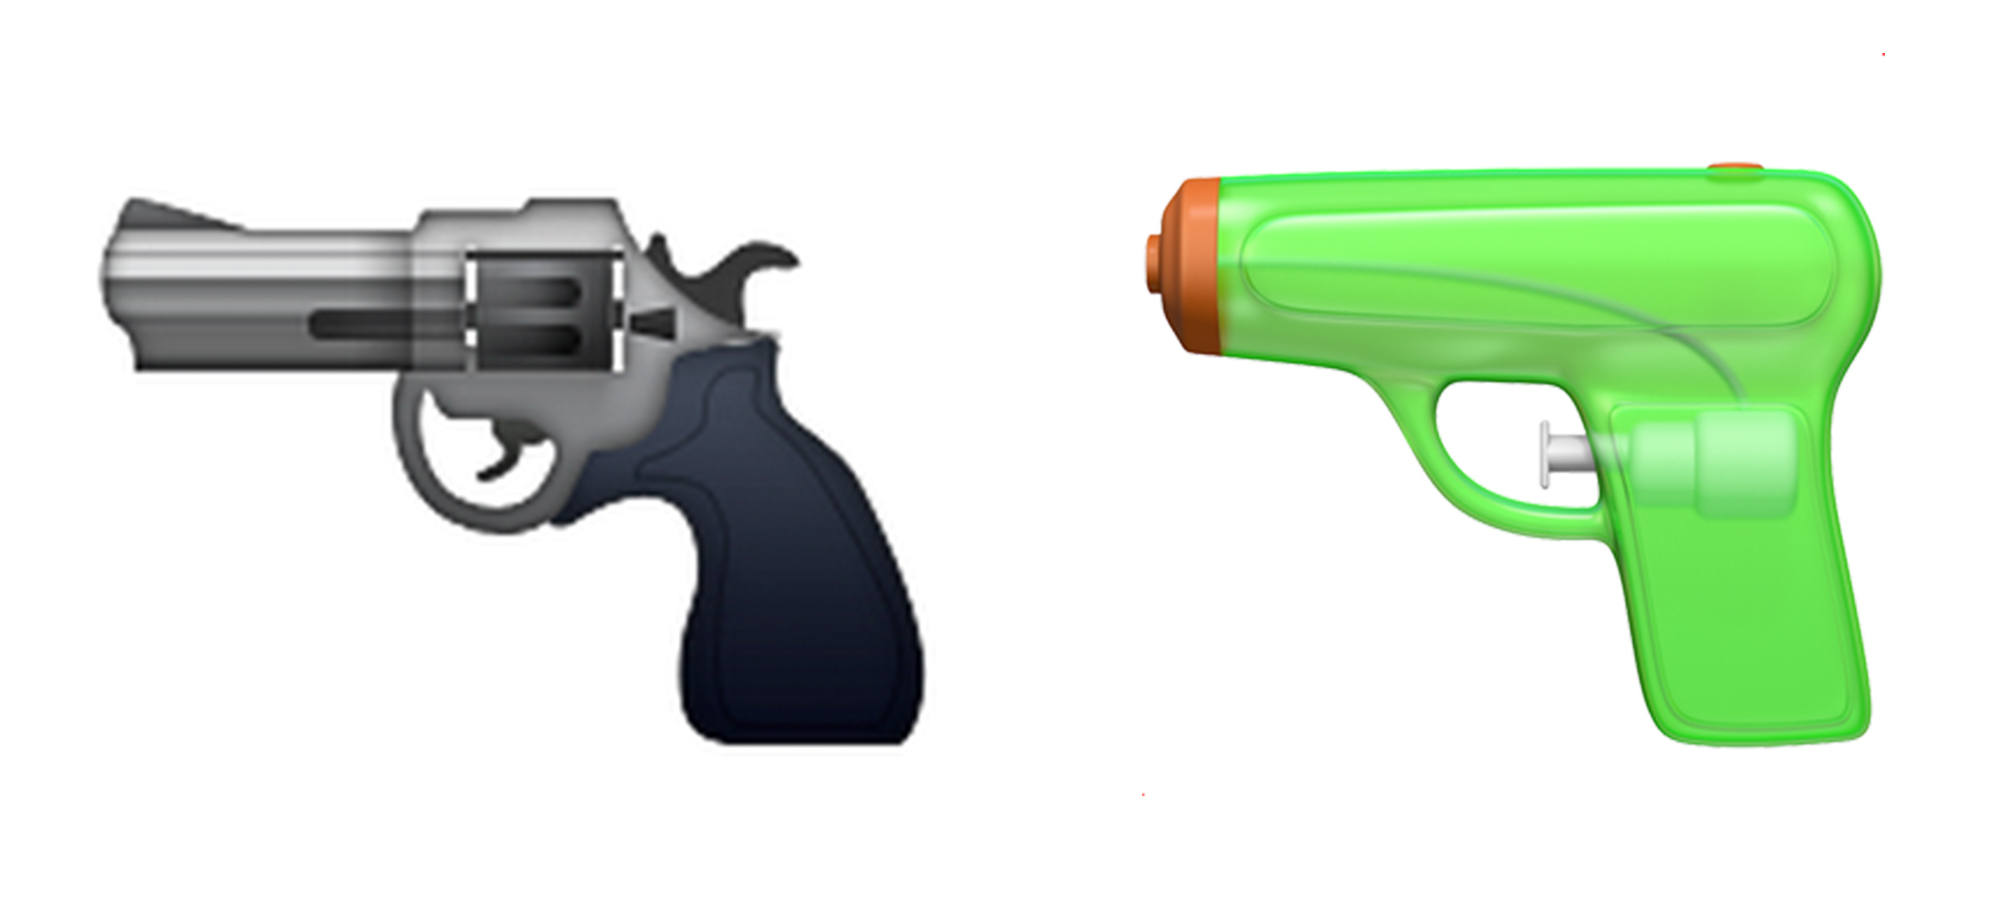 On its latest operating system, iOS 10, Apple has replaced its pistol emoji with this icon of a green water gun. (Apple)